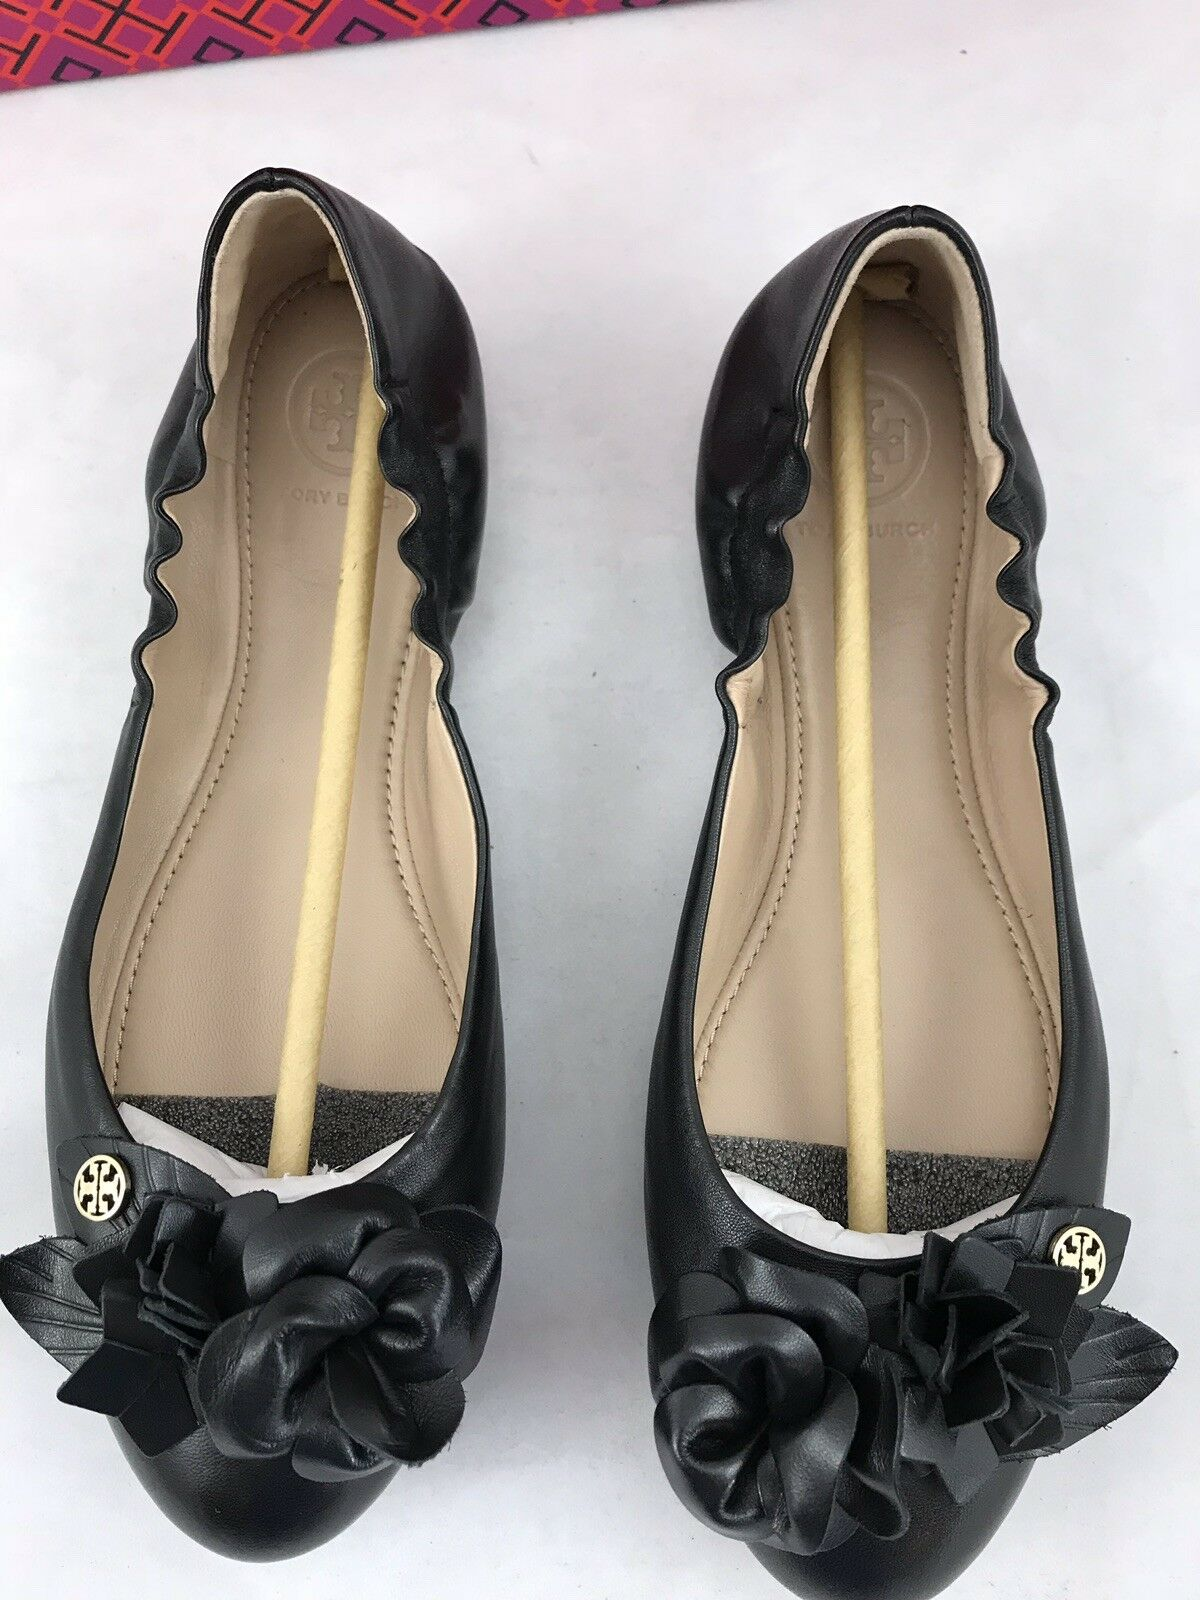 Tory Burch Blossom Black Leather Leather Leather Ballet Flat Size 7 US  258 094d1c